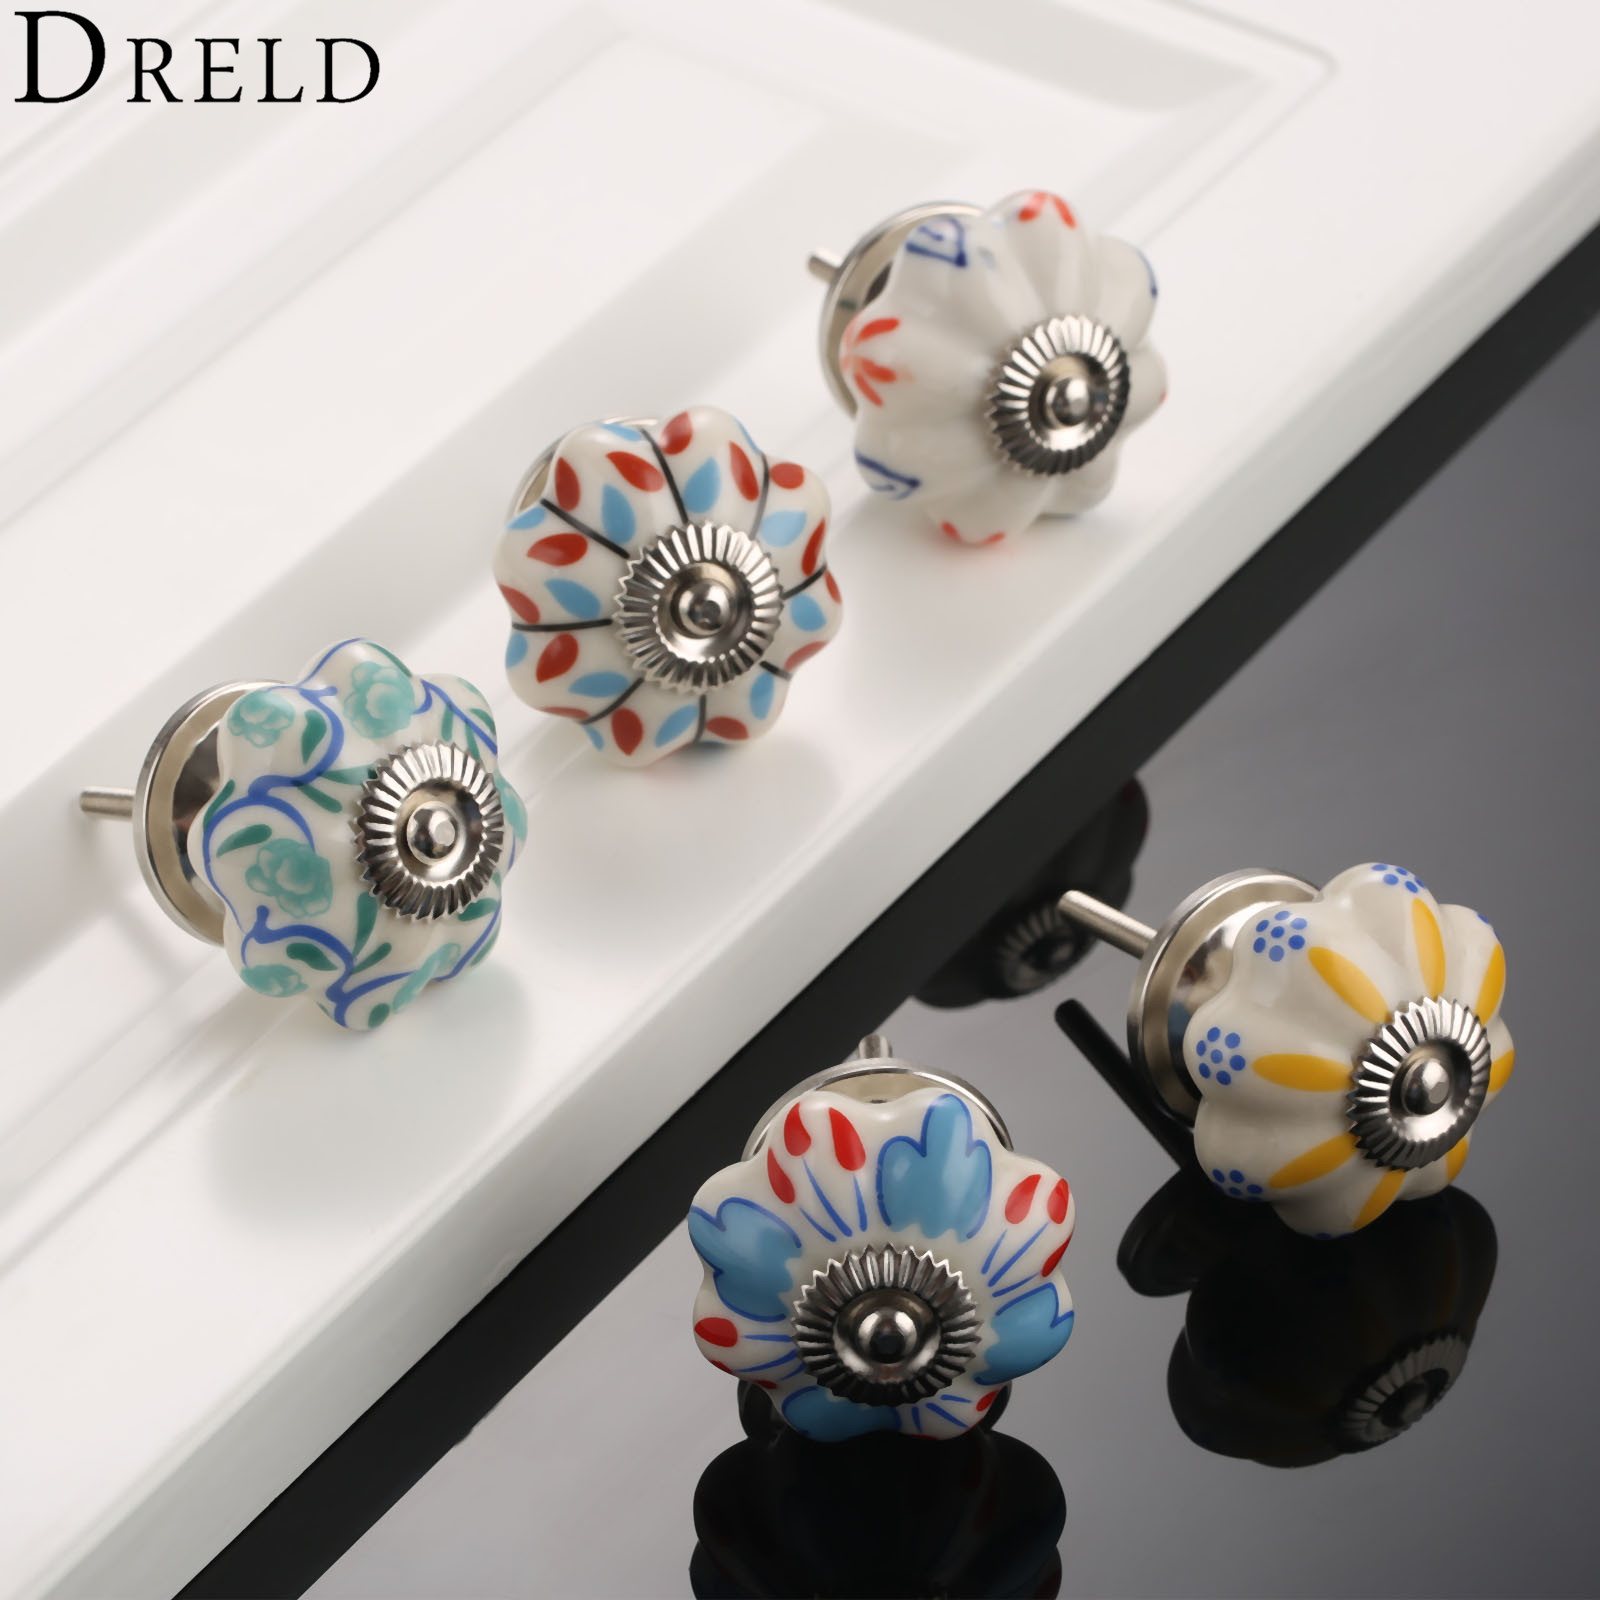 DRELD Flower Furniture Handle Ceramic Cupboard Drawer Knobs and Handles Knobs Handle Kitchen Door Pull Handle Furniture Hardware dreld 96 128 160mm furniture handle modern cabinet knobs and handles door cupboard drawer kitchen pull handle furniture hardware